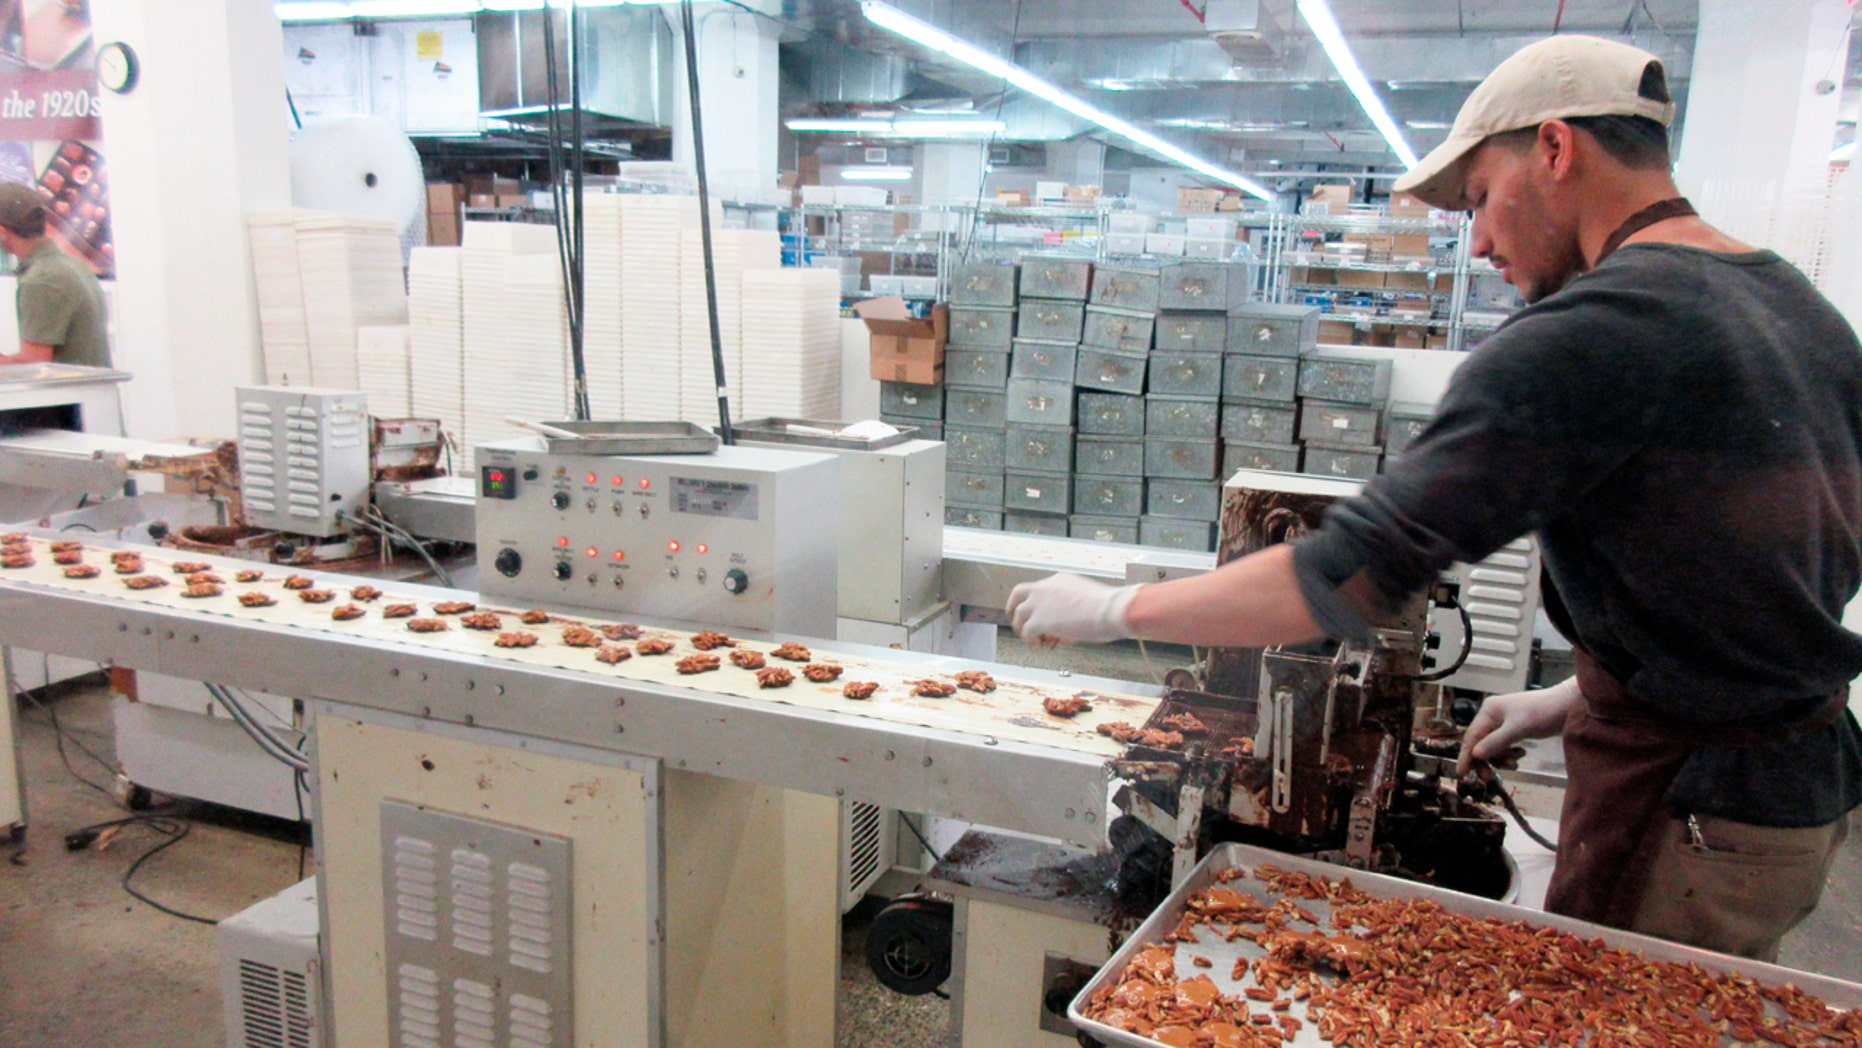 This April 28, 2017 photo shows a worker at Li-Lac Chocolates' factory in Industry City in Brooklyn, N.Y. Li-Lac is one of a number of stops on A Slice of Brooklyn chocolate tour, which offers chocolate samples to taste along with visits to different neighborhoods and insights into how some of the businesses on the tour got started. (AP Photo/Beth J. Harpaz)